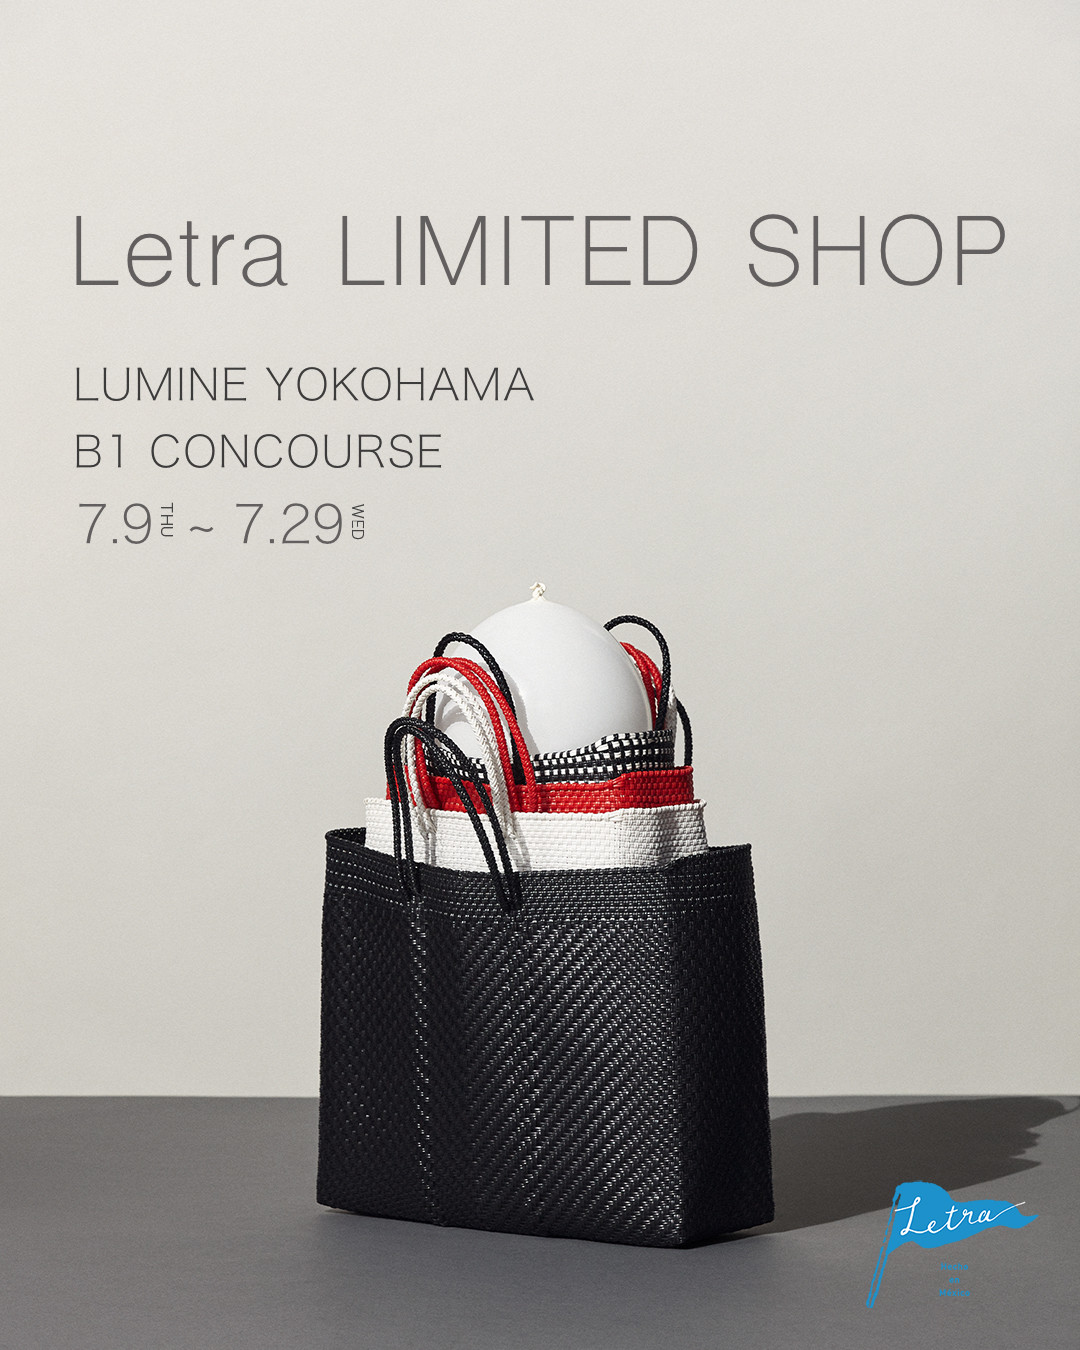 Letra Limited Shop ルミネ横浜 OPEN!